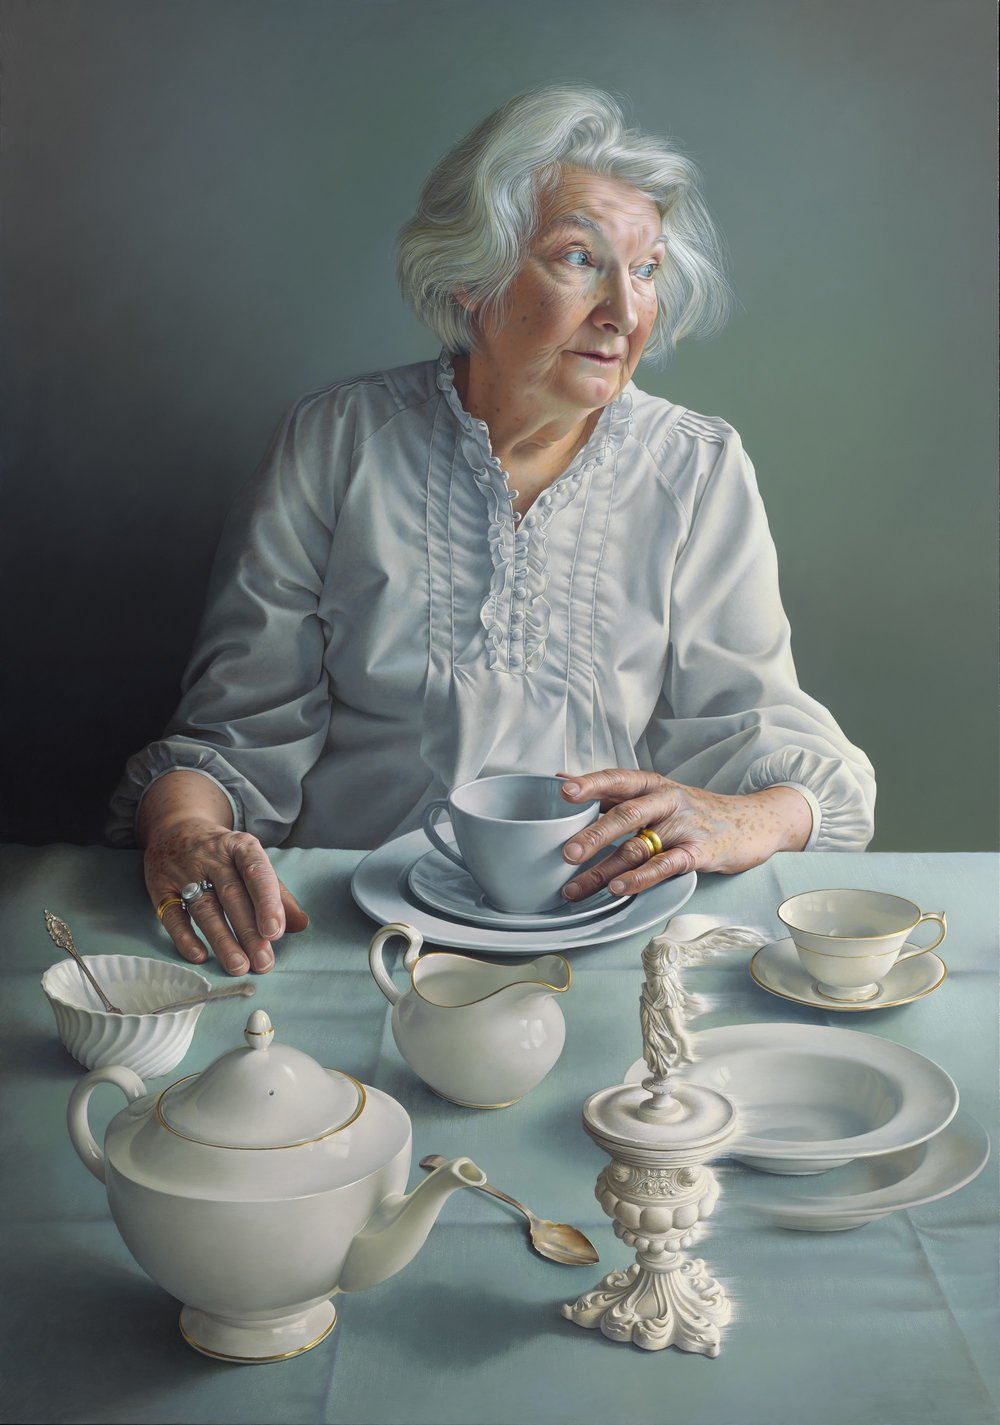 Miriam Escofet Allen |  An Angel at my Table – Portrait of my Mother  |  Oil on canvas  |  39 ¼ x 27 ½ inches or 100 x 70 cm